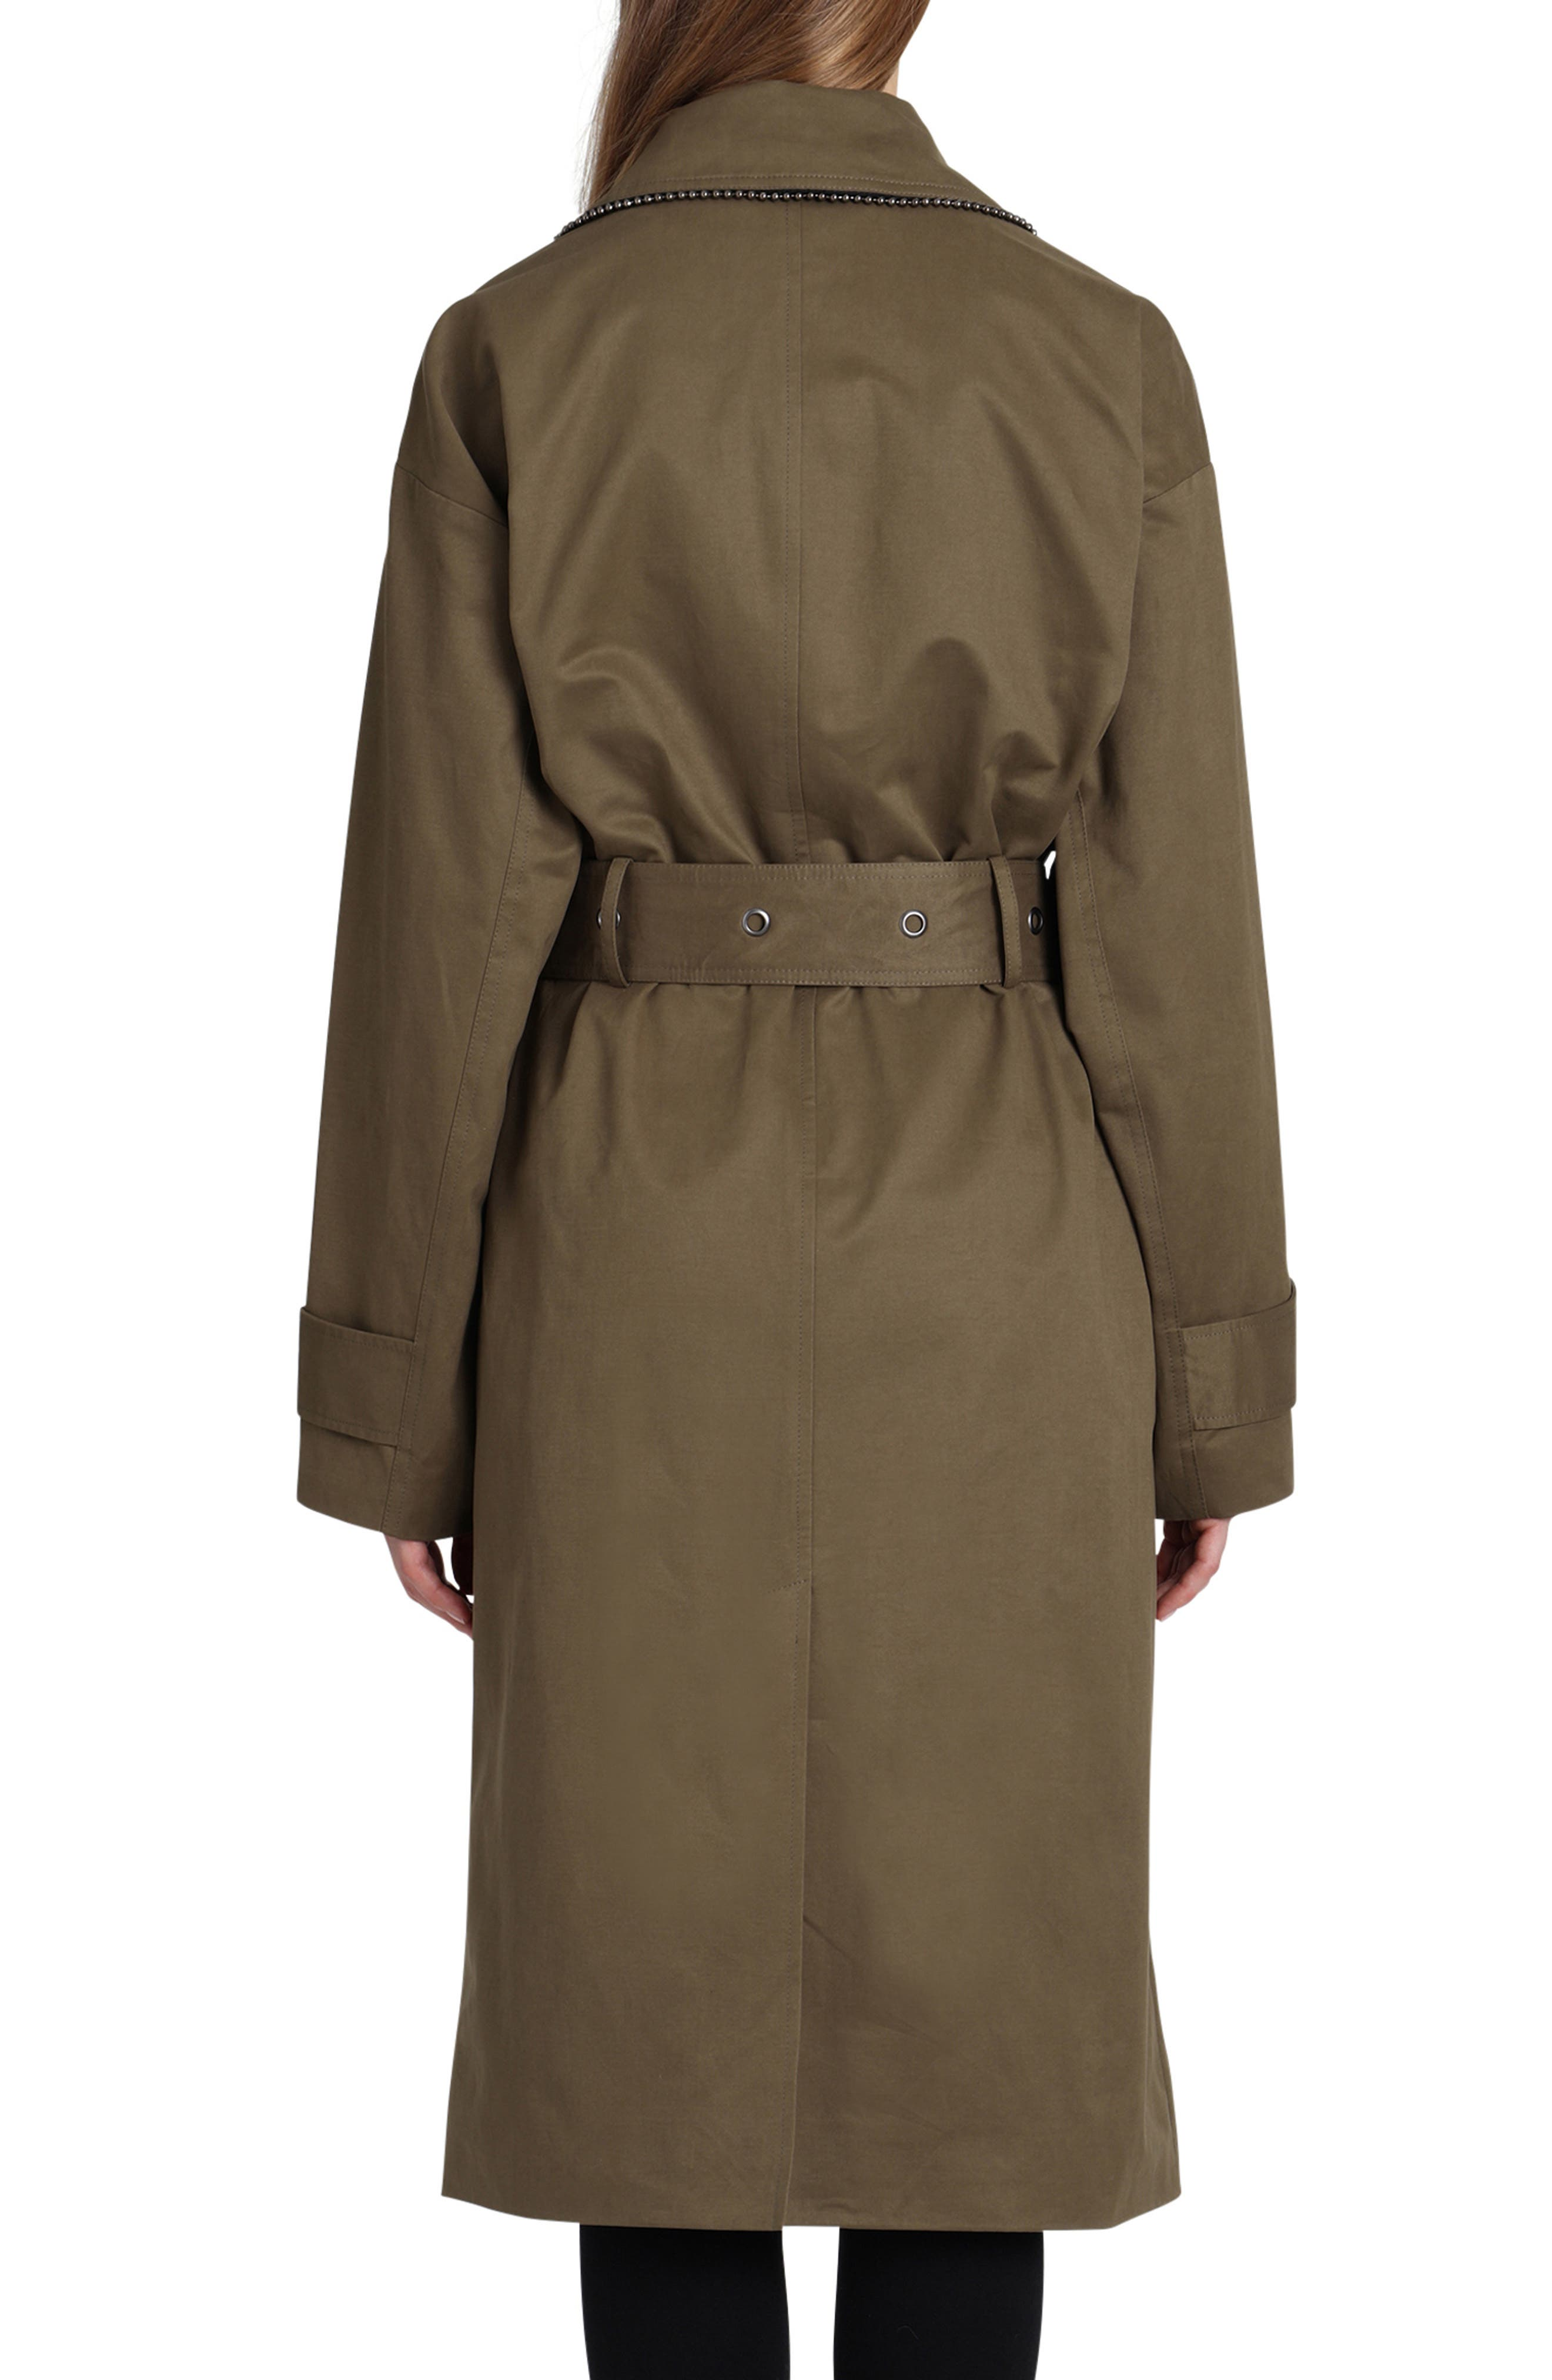 Badgley Mischka Cotton Blend Utility Trench Coat,                             Alternate thumbnail 2, color,                             301